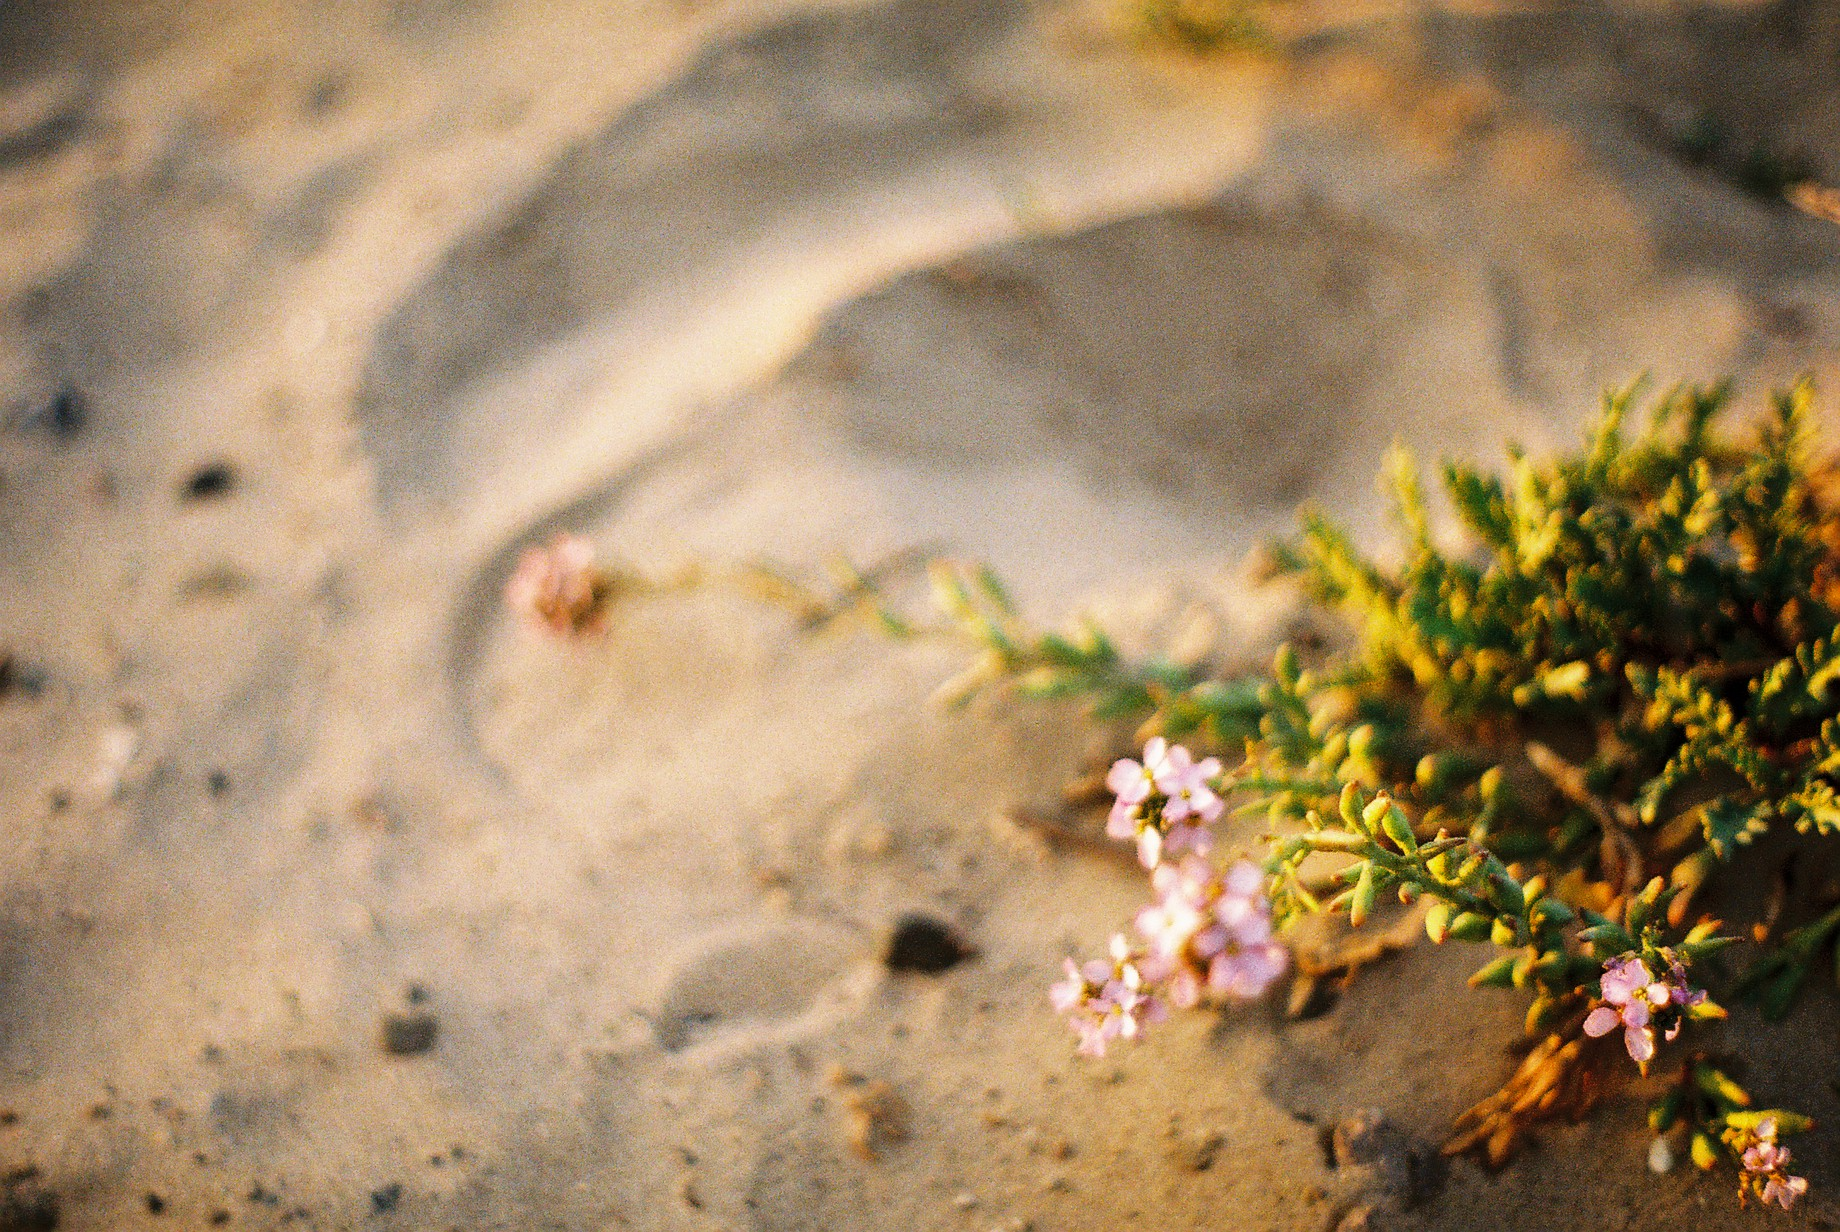 Highway 1 Purple Flowers Analogue Travel Journal